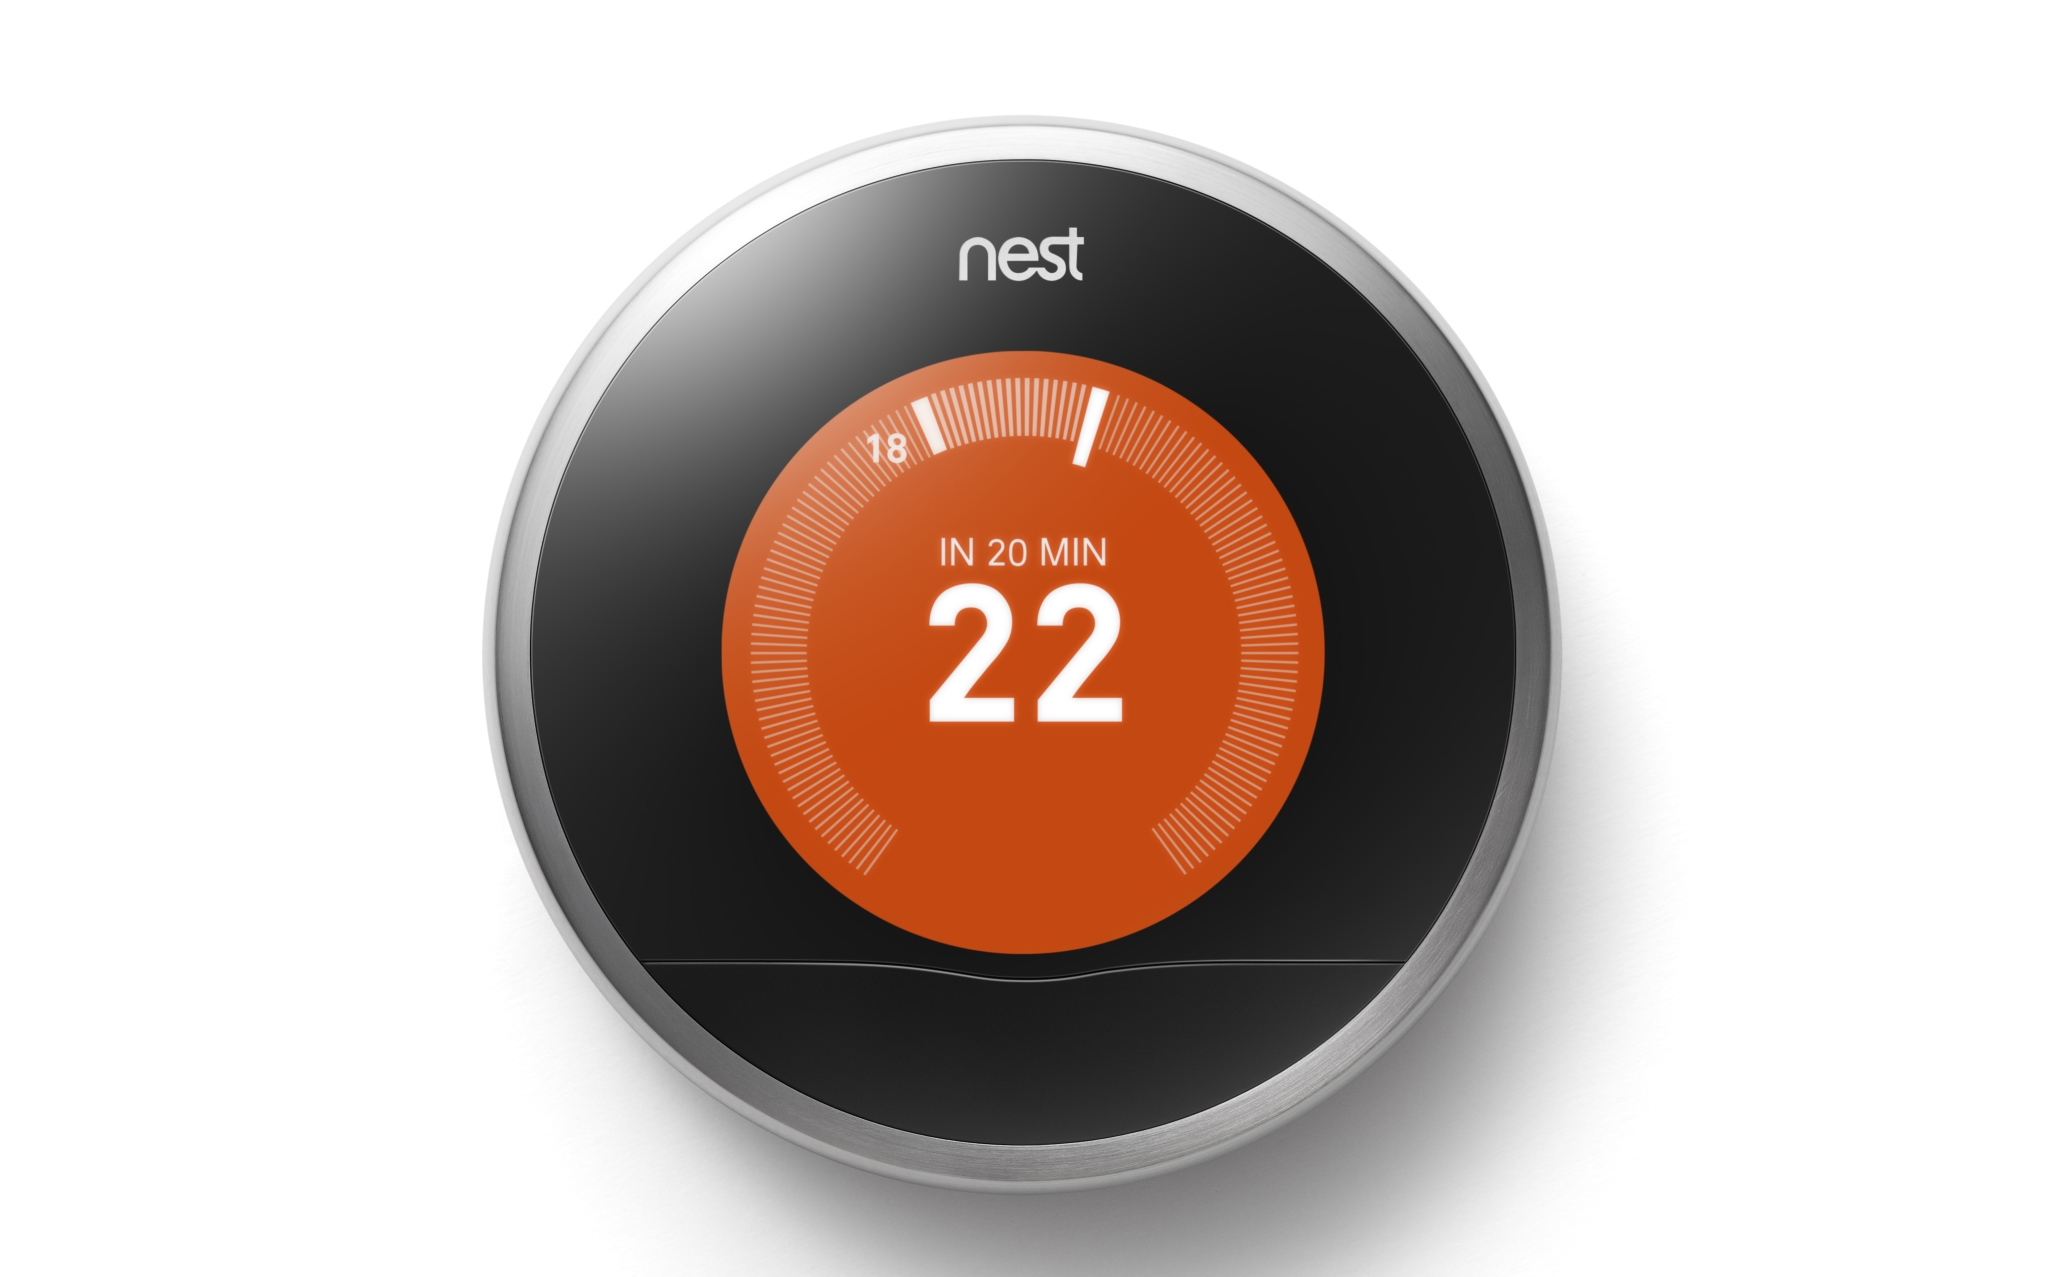 nest_celsius_heating.jpg